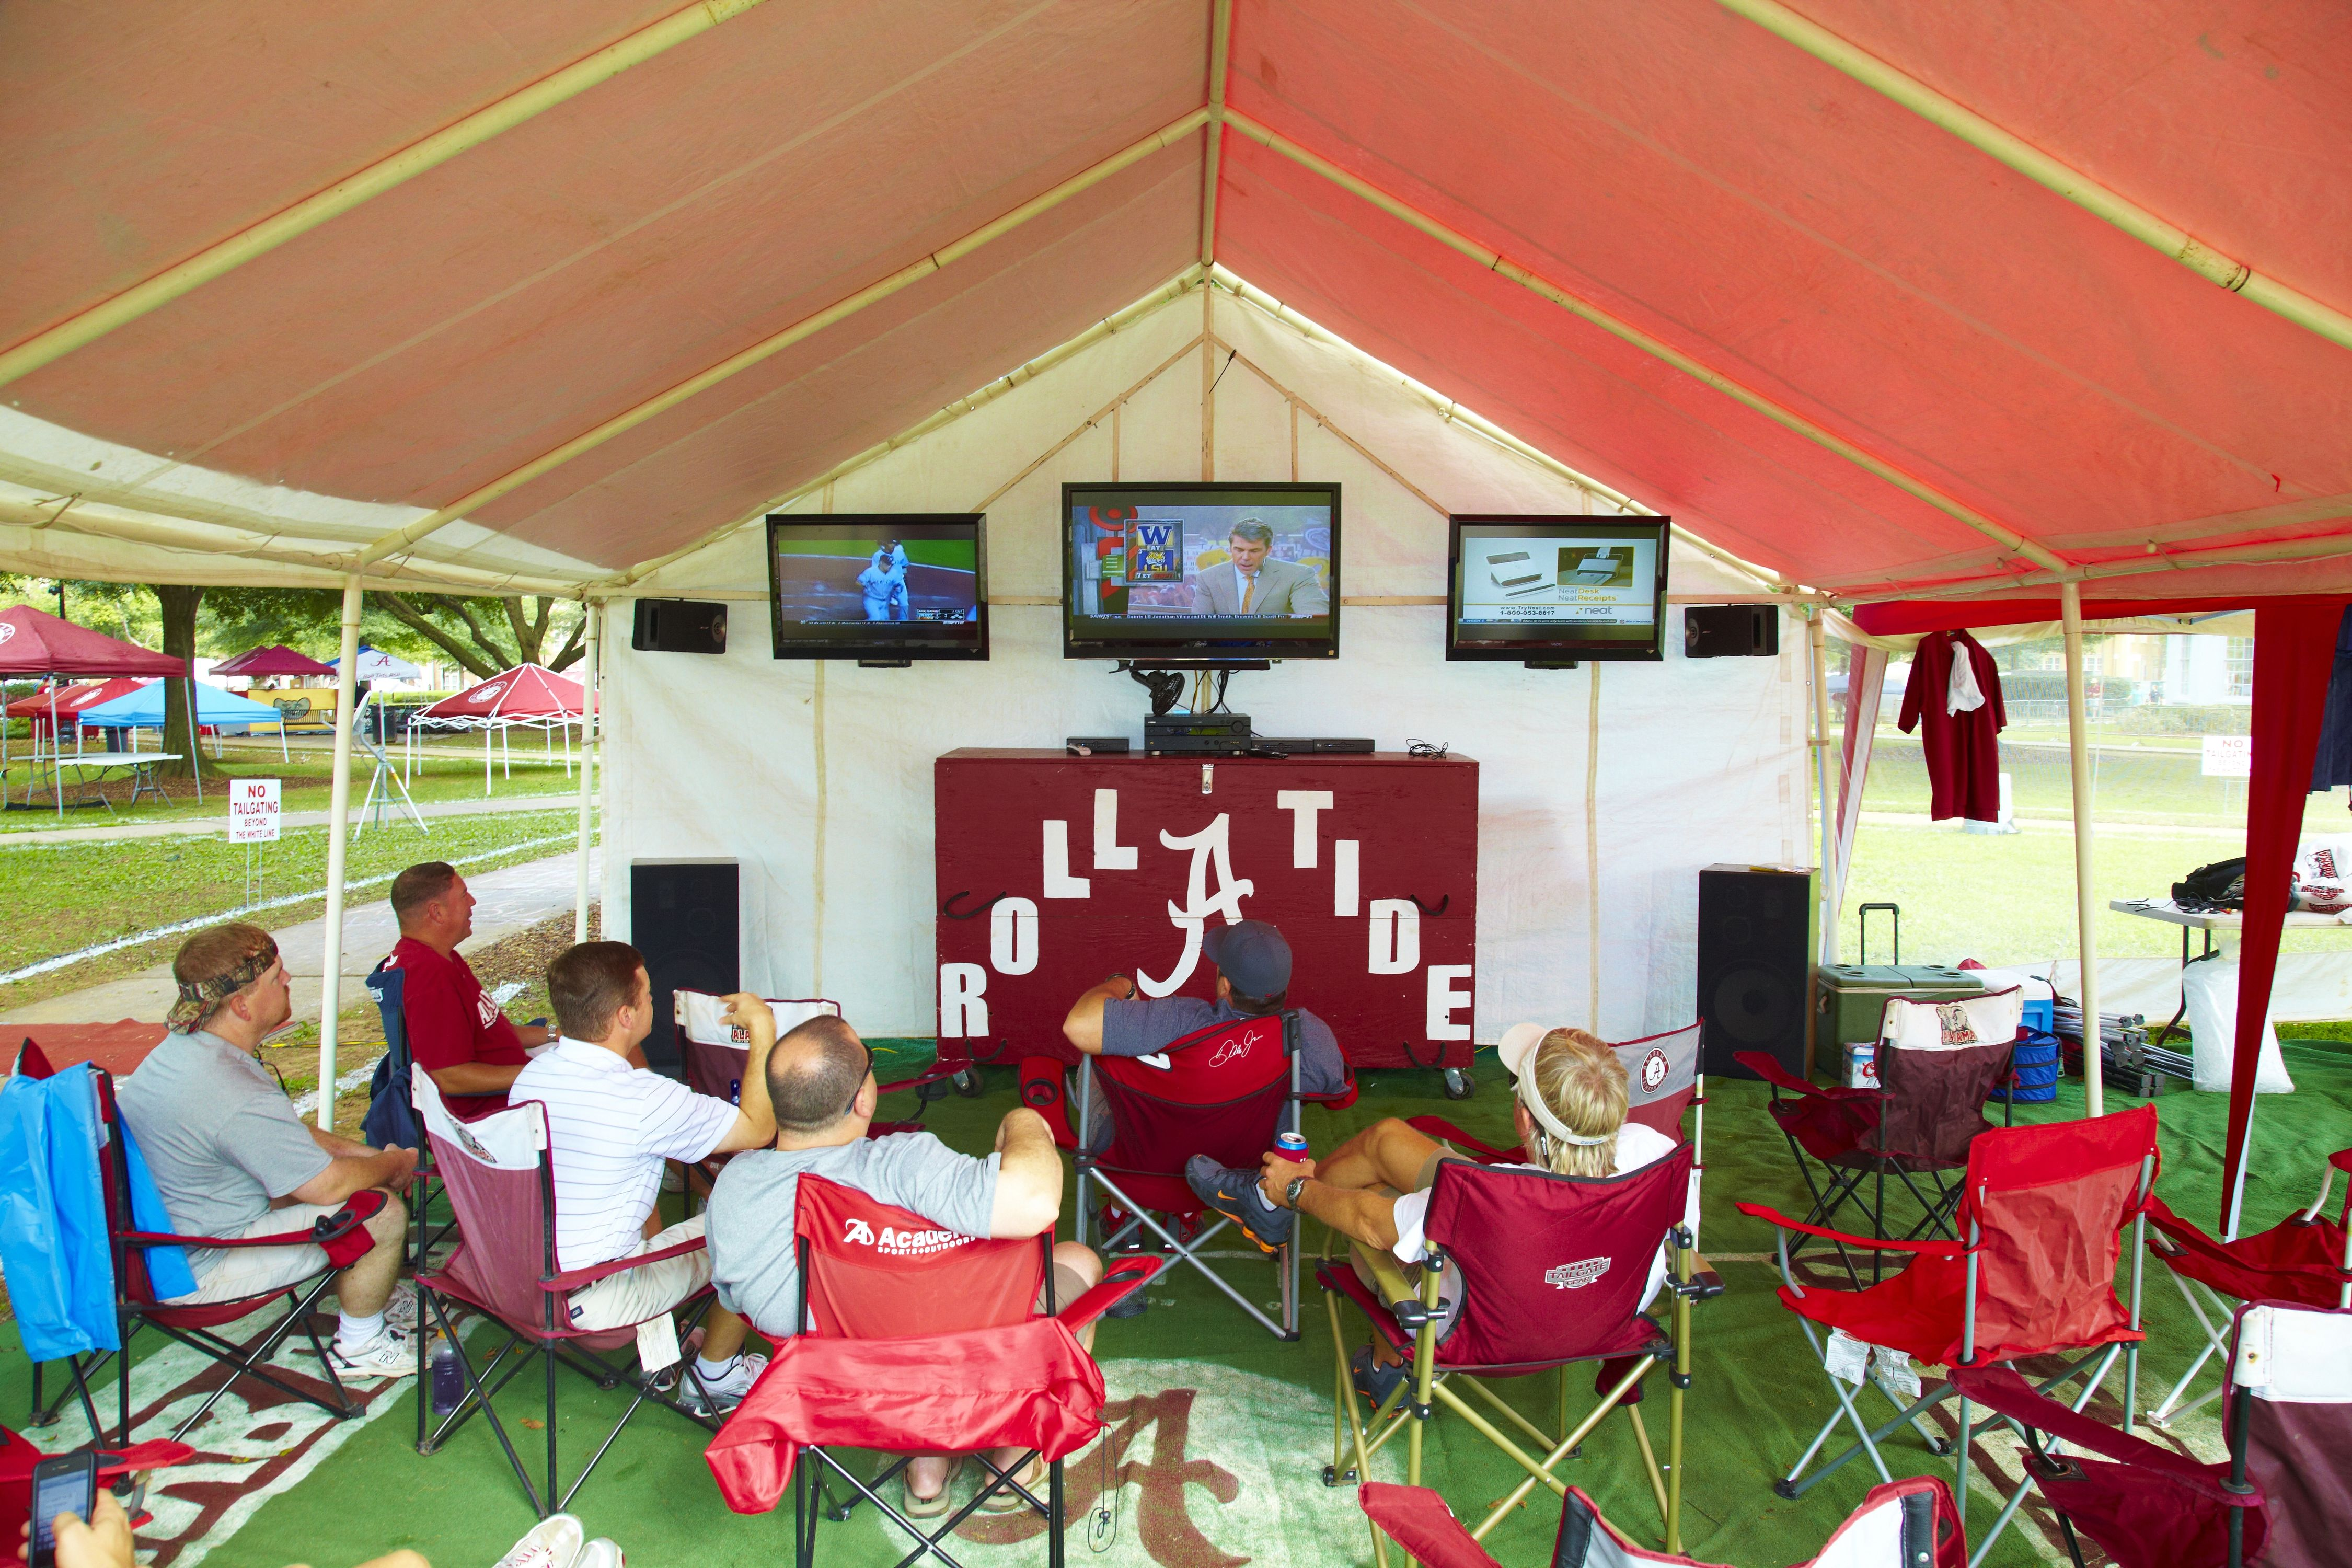 The South's Best Tailgate: Alabama Snags the Number 3 Spot